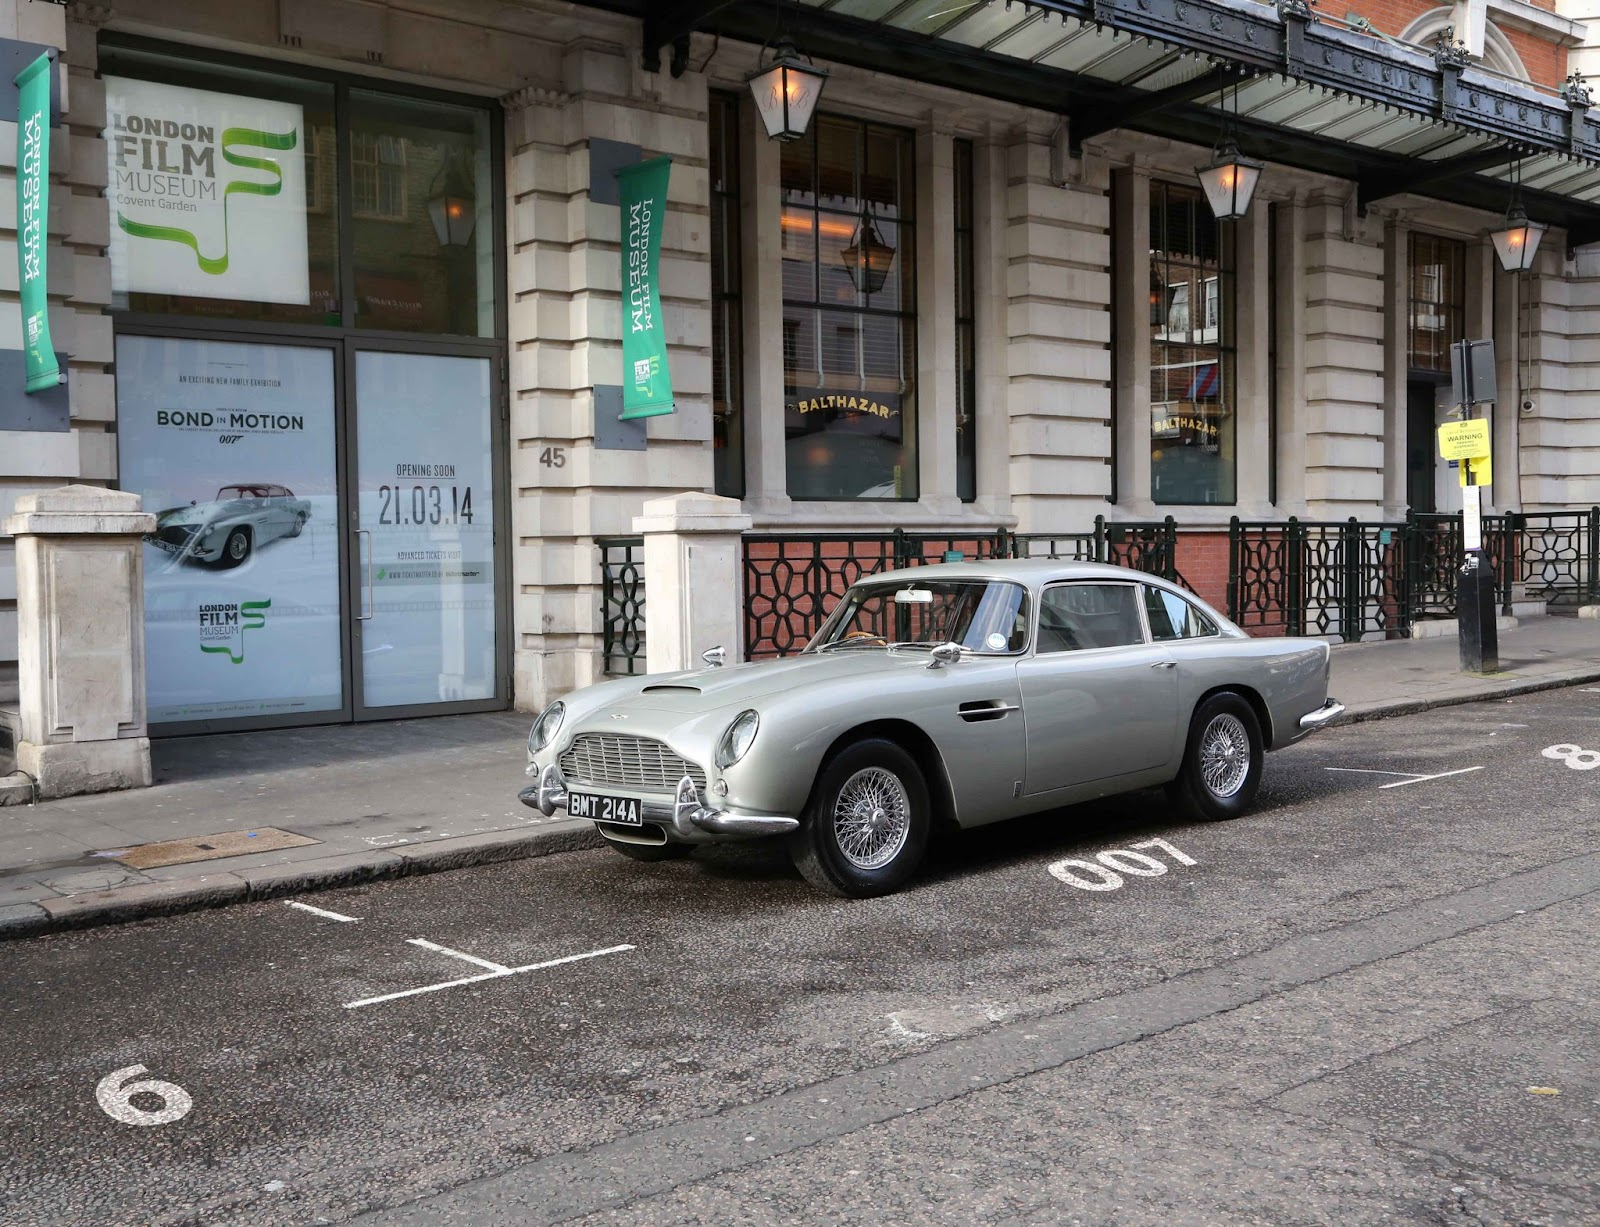 Bond in Motion London Film Museum Aston Martin DB5 GoldenEye